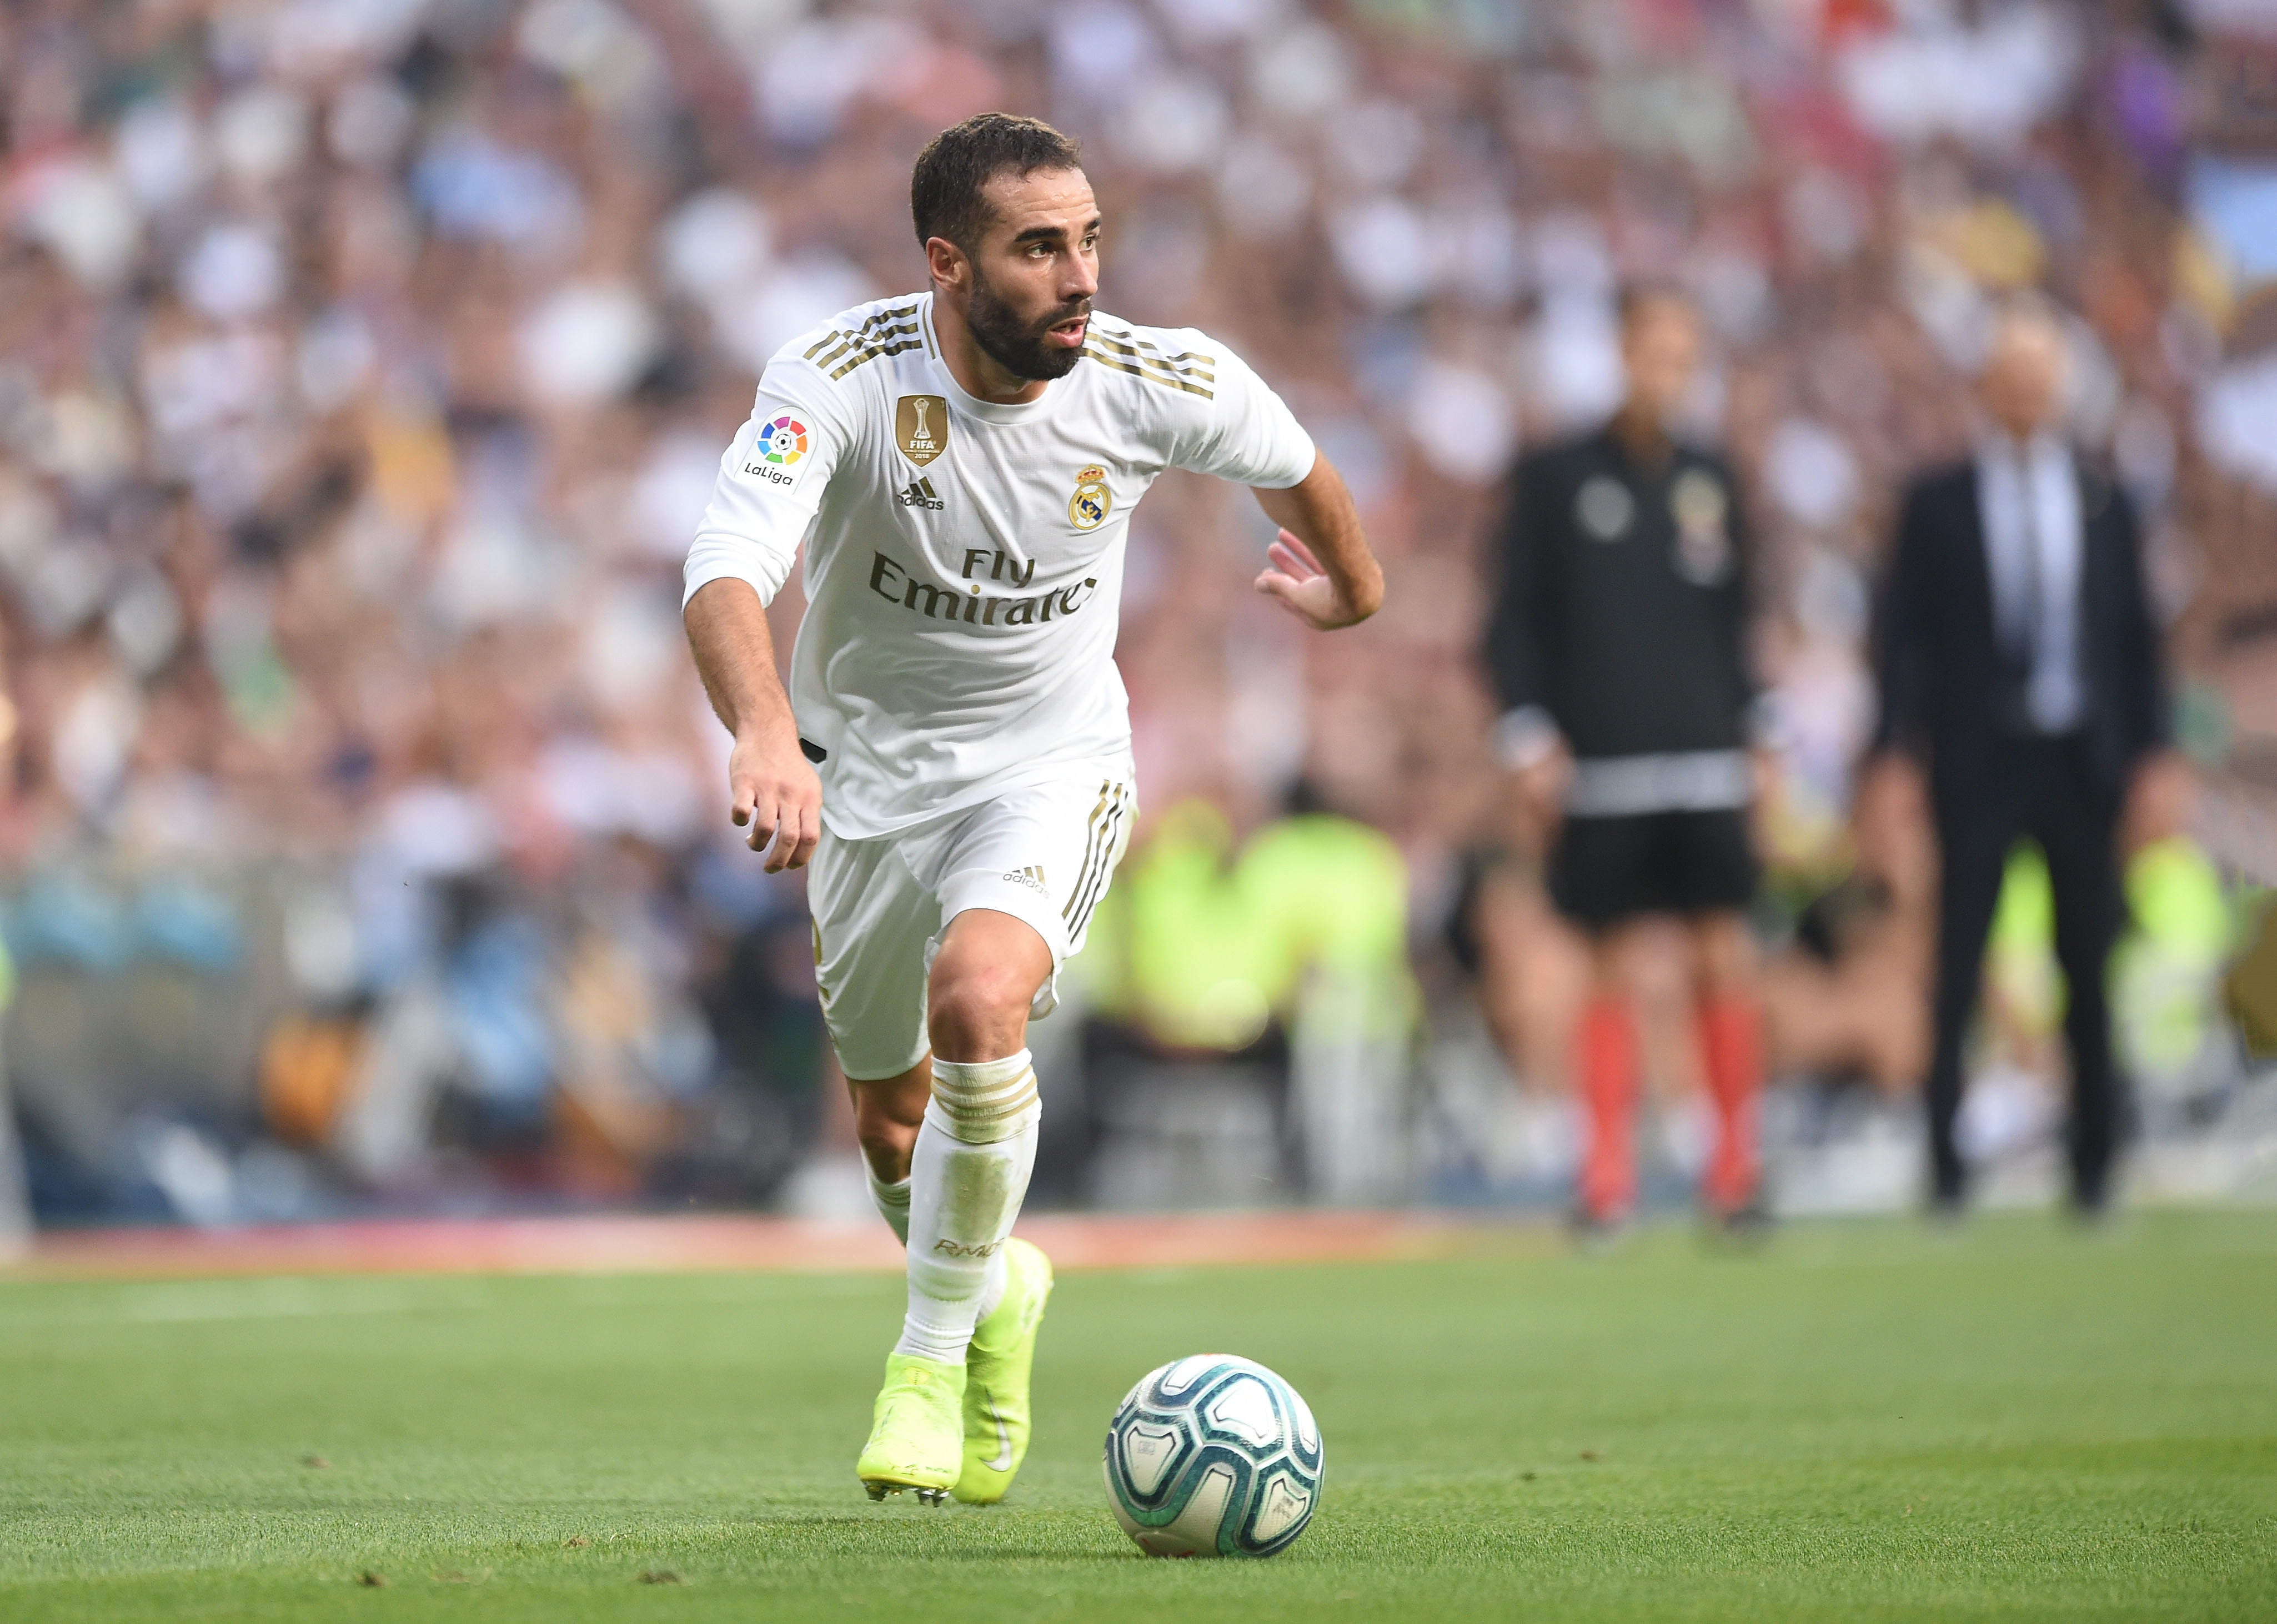 Dani Carvajal will be unavailable for Real Madrid. (Photo by Denis Doyle/Getty Images)